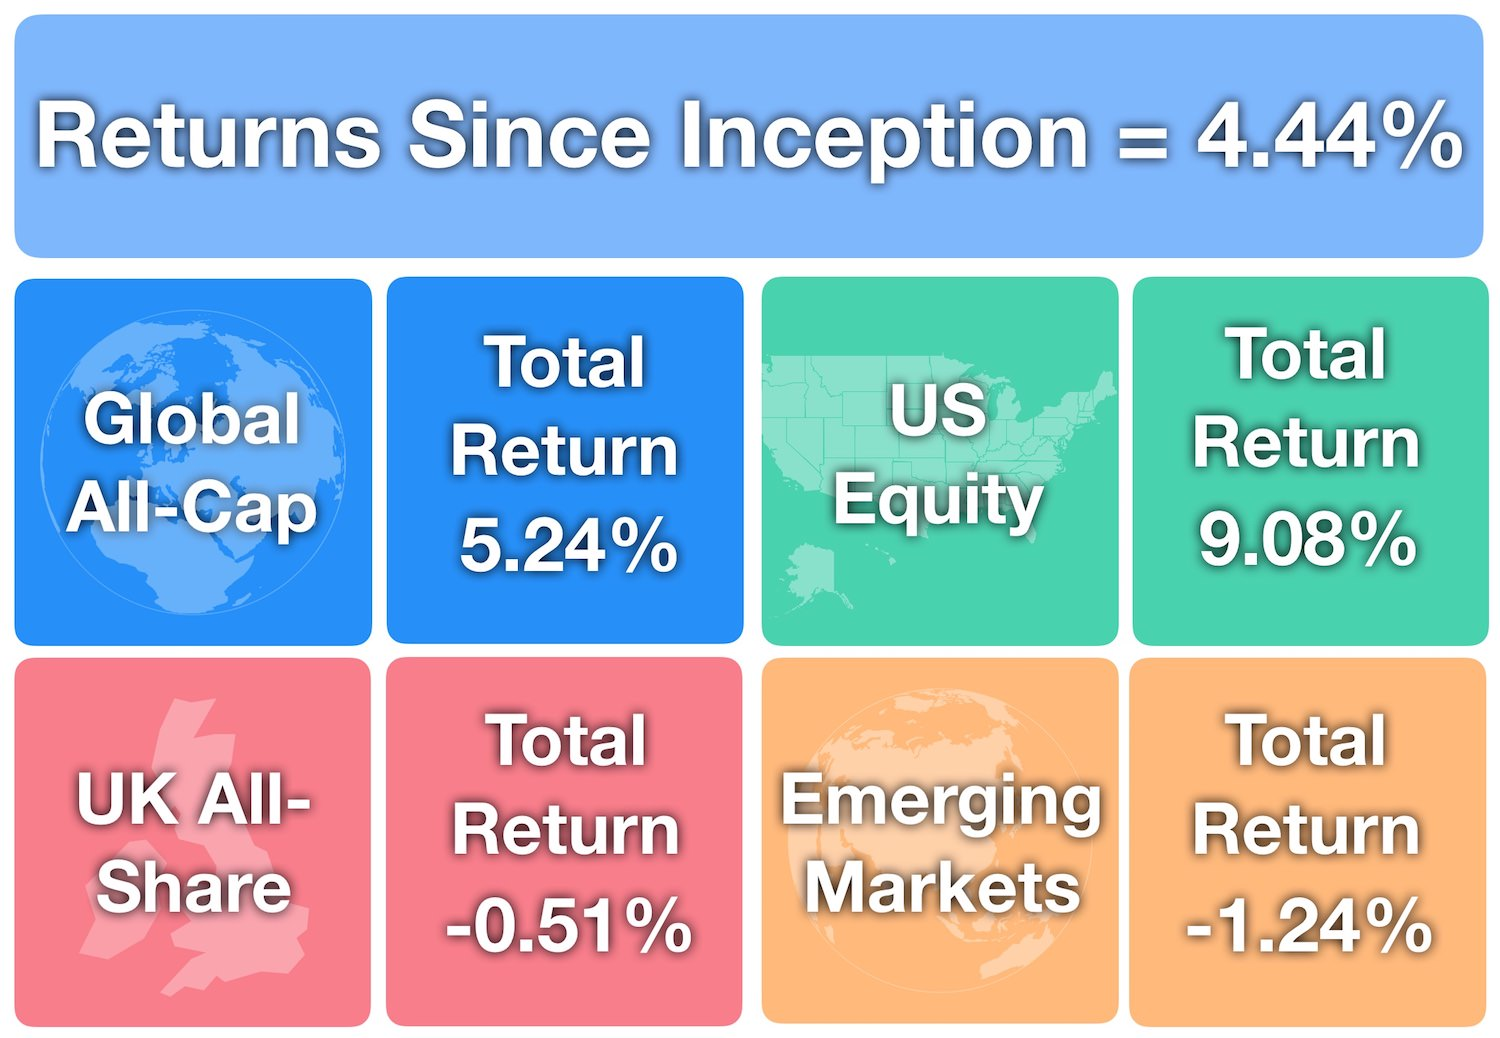 Investments Returns Since Inception August 2018